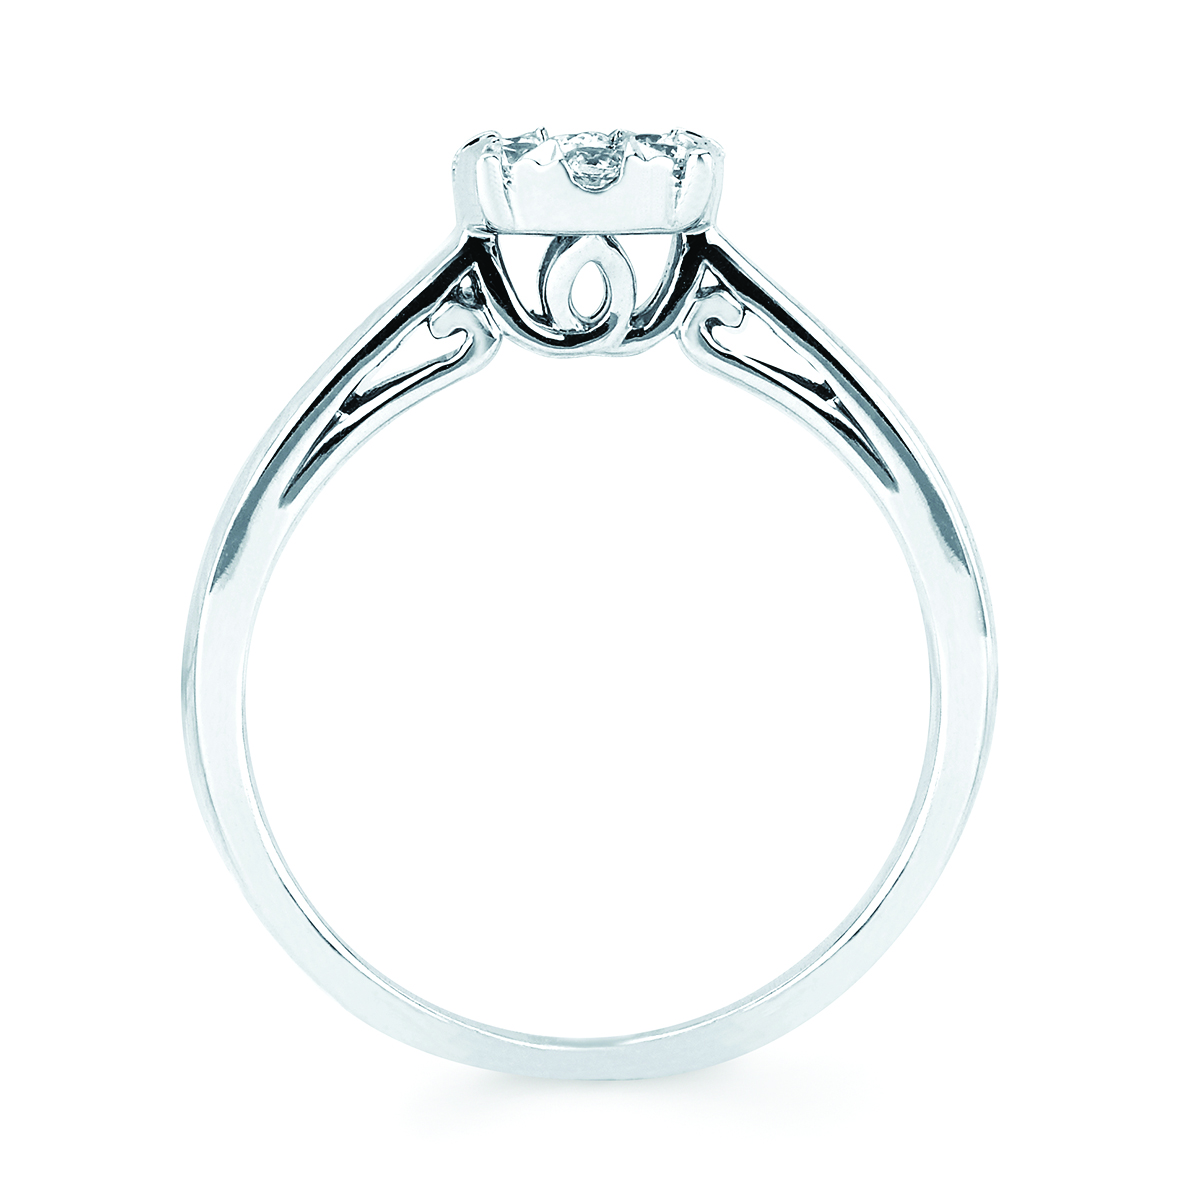 Rings - 14k White Gold Ring - image 4